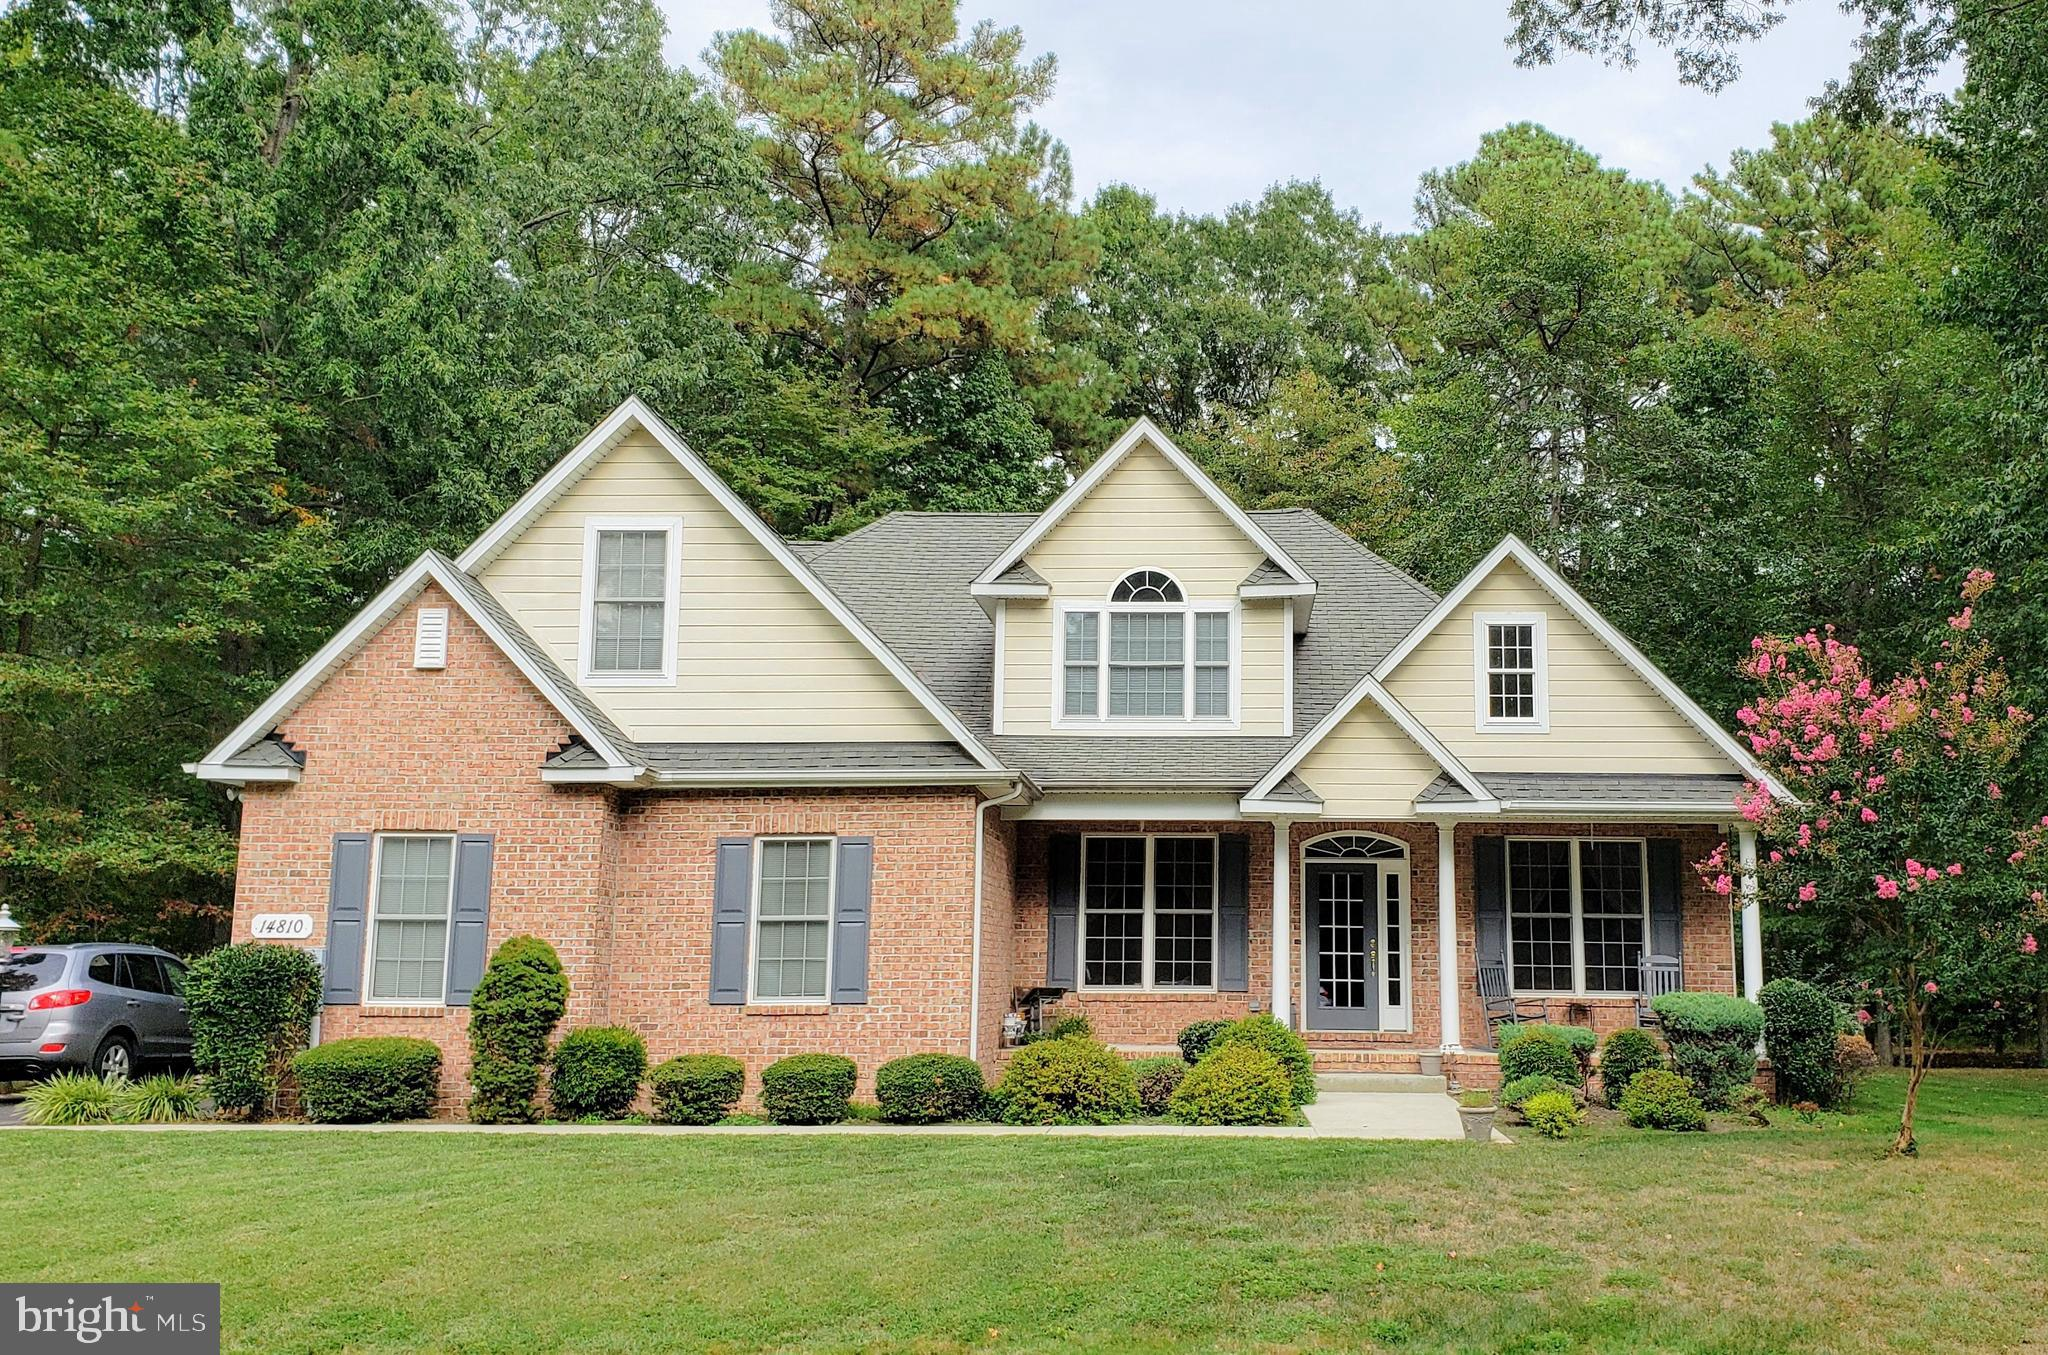 14810 KING CHARLES DRIVE, SWAN POINT, MD 20645